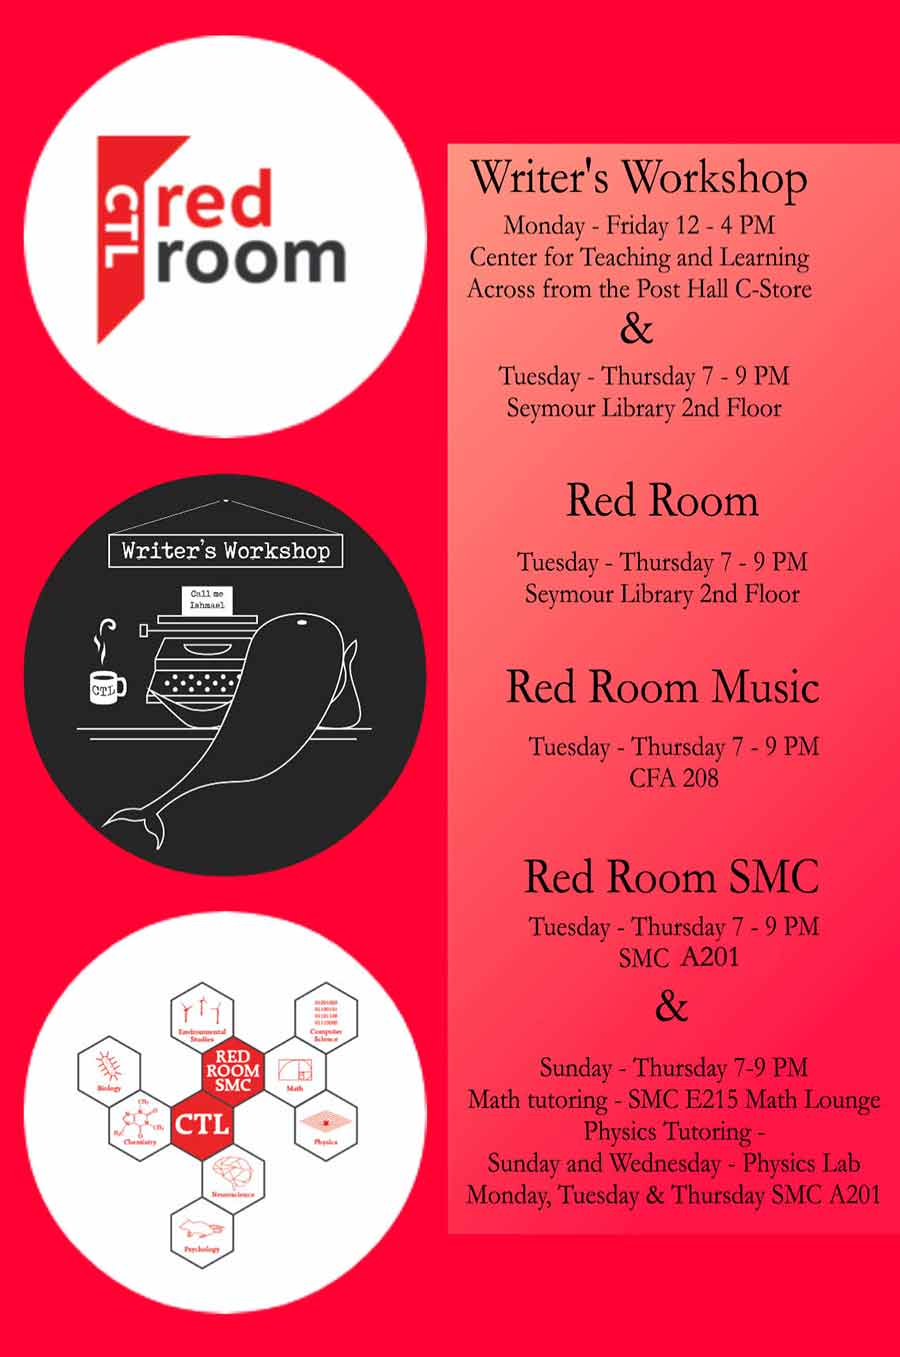 Red Room Tutoring